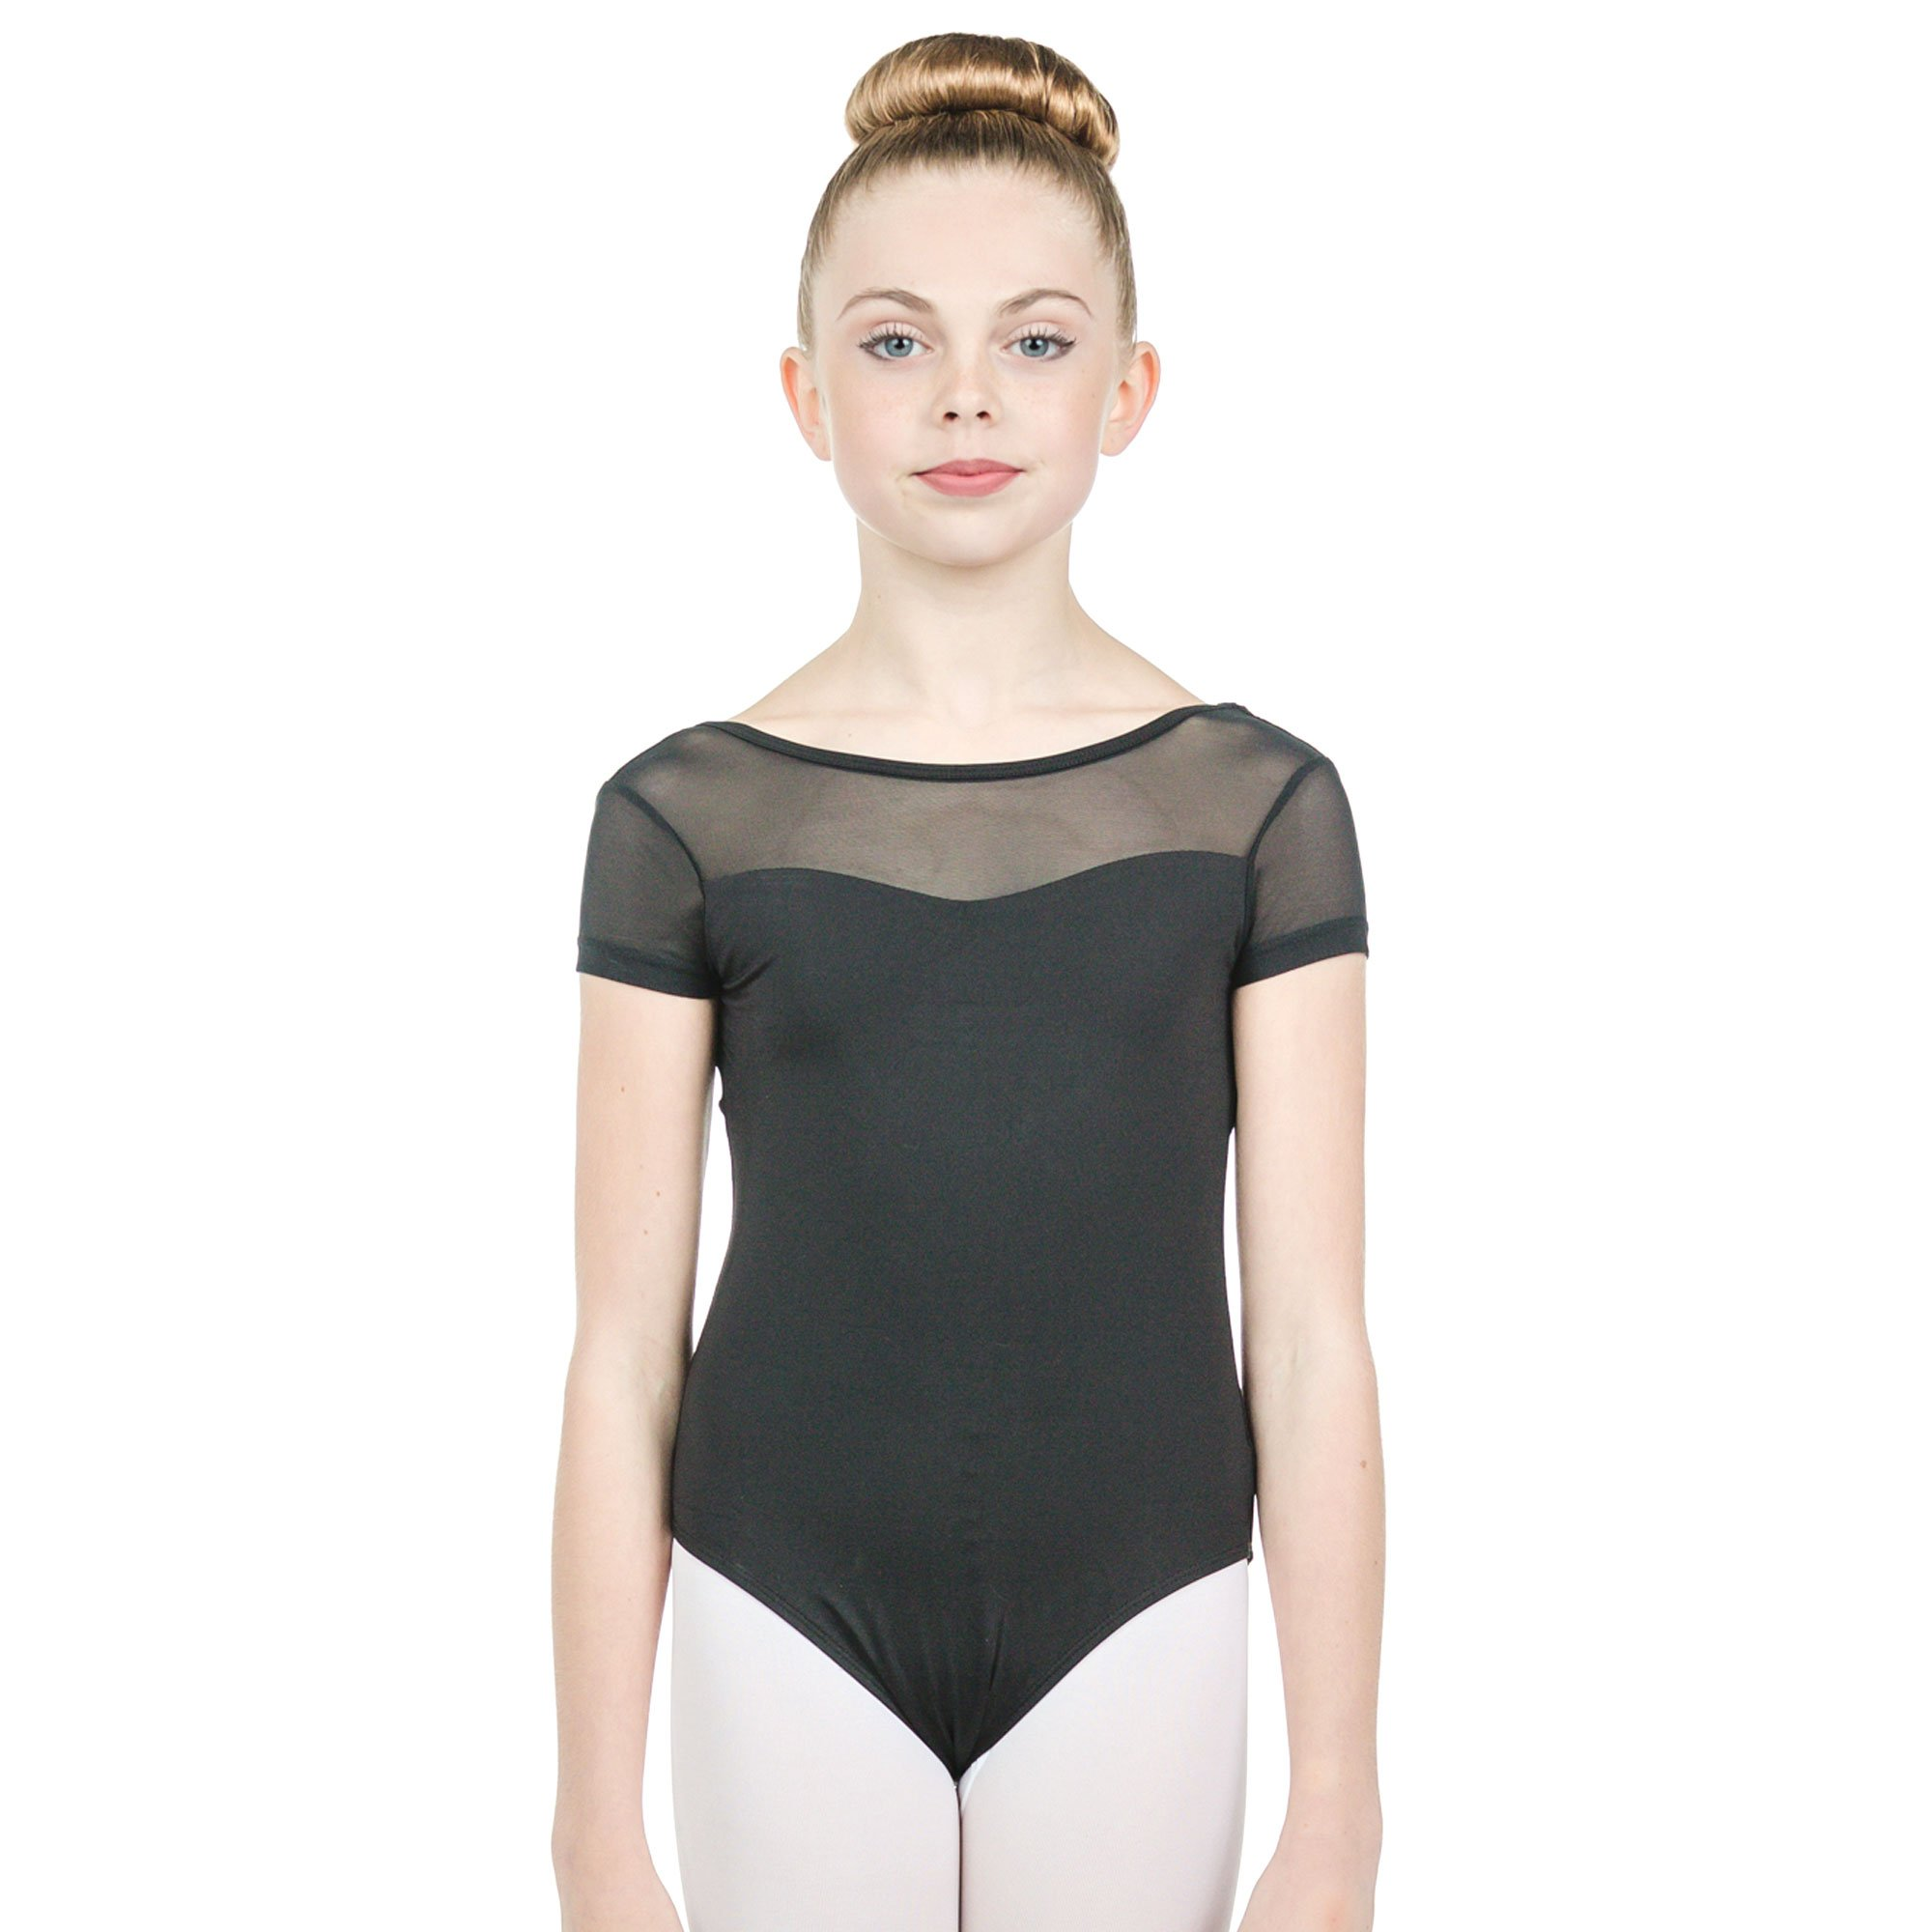 Baiwu Child Cap Sleeve Mesh Up Round Back Leotard